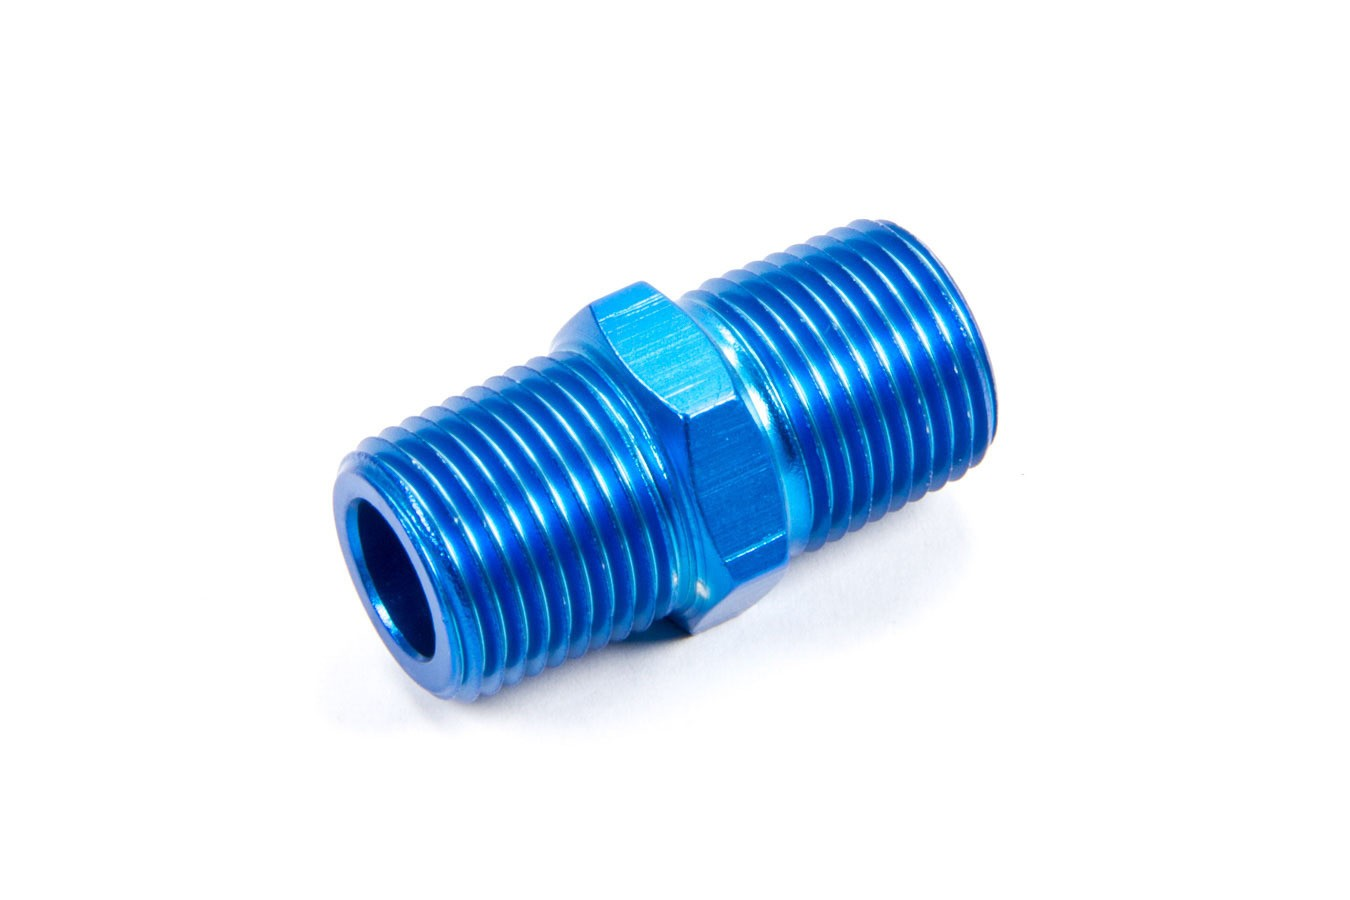 Fragola 491103 Fitting, Adapter, Straight, 3/8 in NPT Male to 3/8 in NPT Male, Aluminum, Blue Anodize, Each